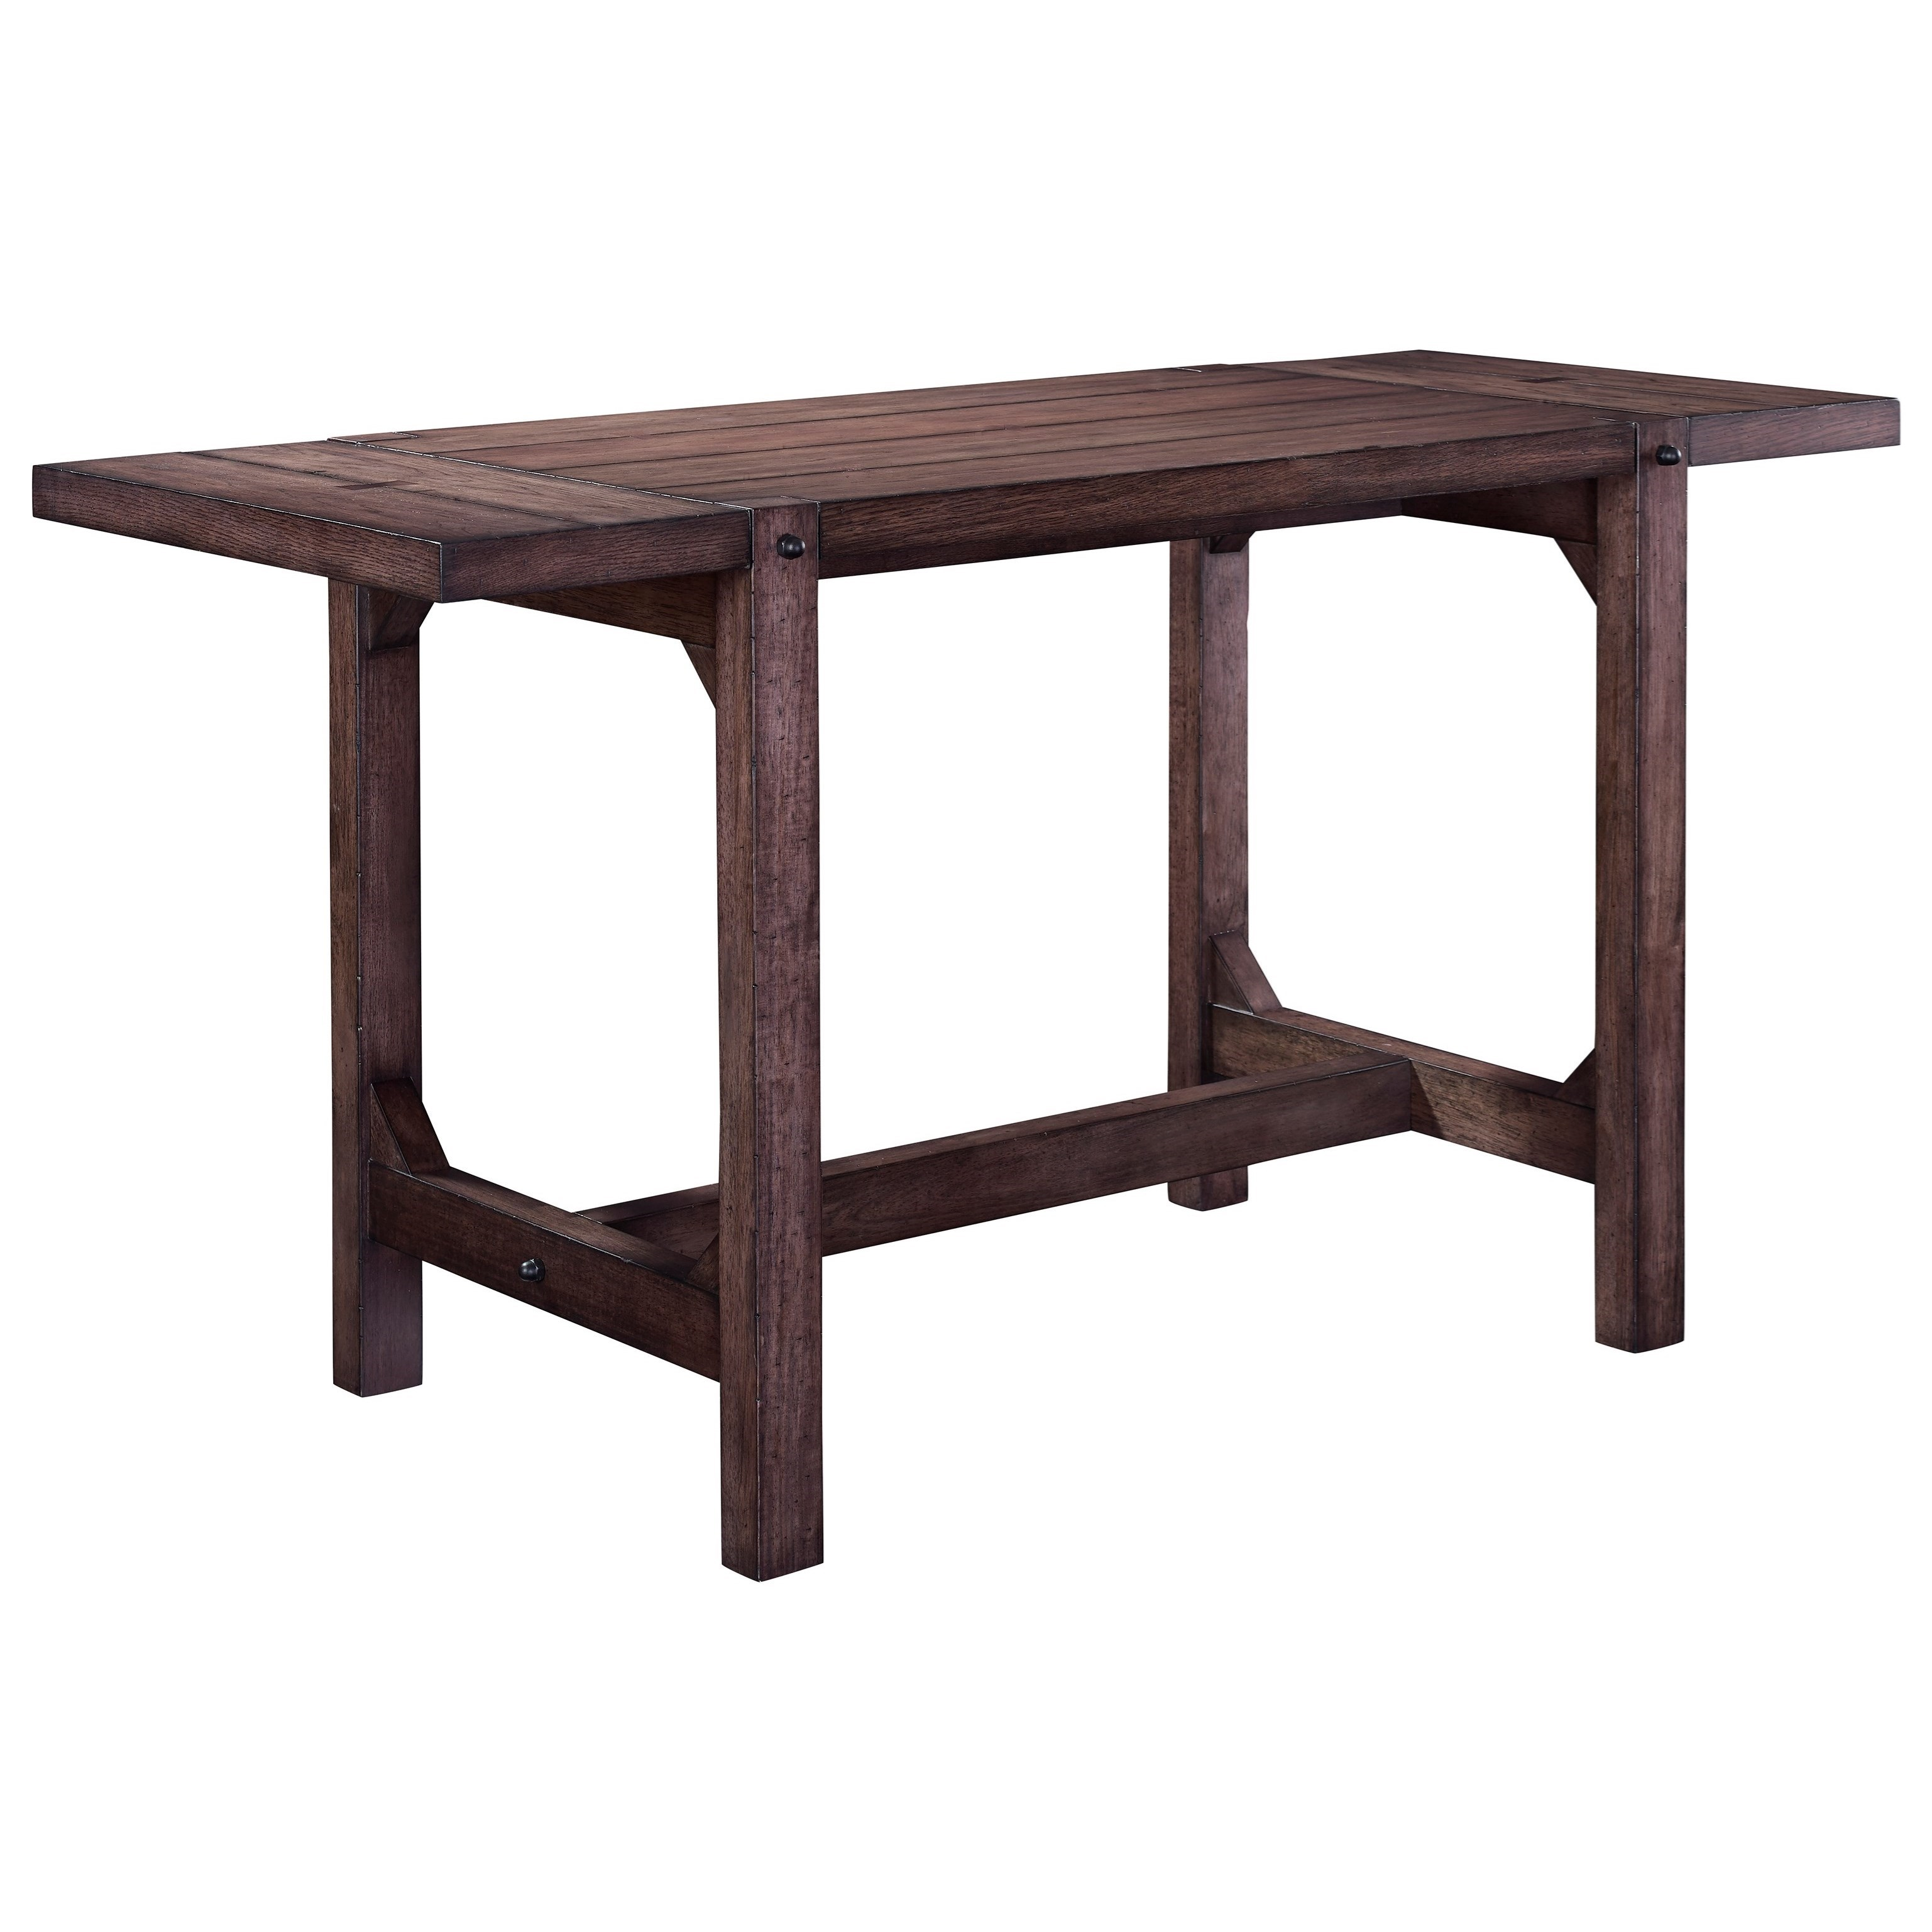 Broyhill Furniture Bedford Avenue Clifton Place Drop-Leaf Wine Table - Item Number: 8615-504